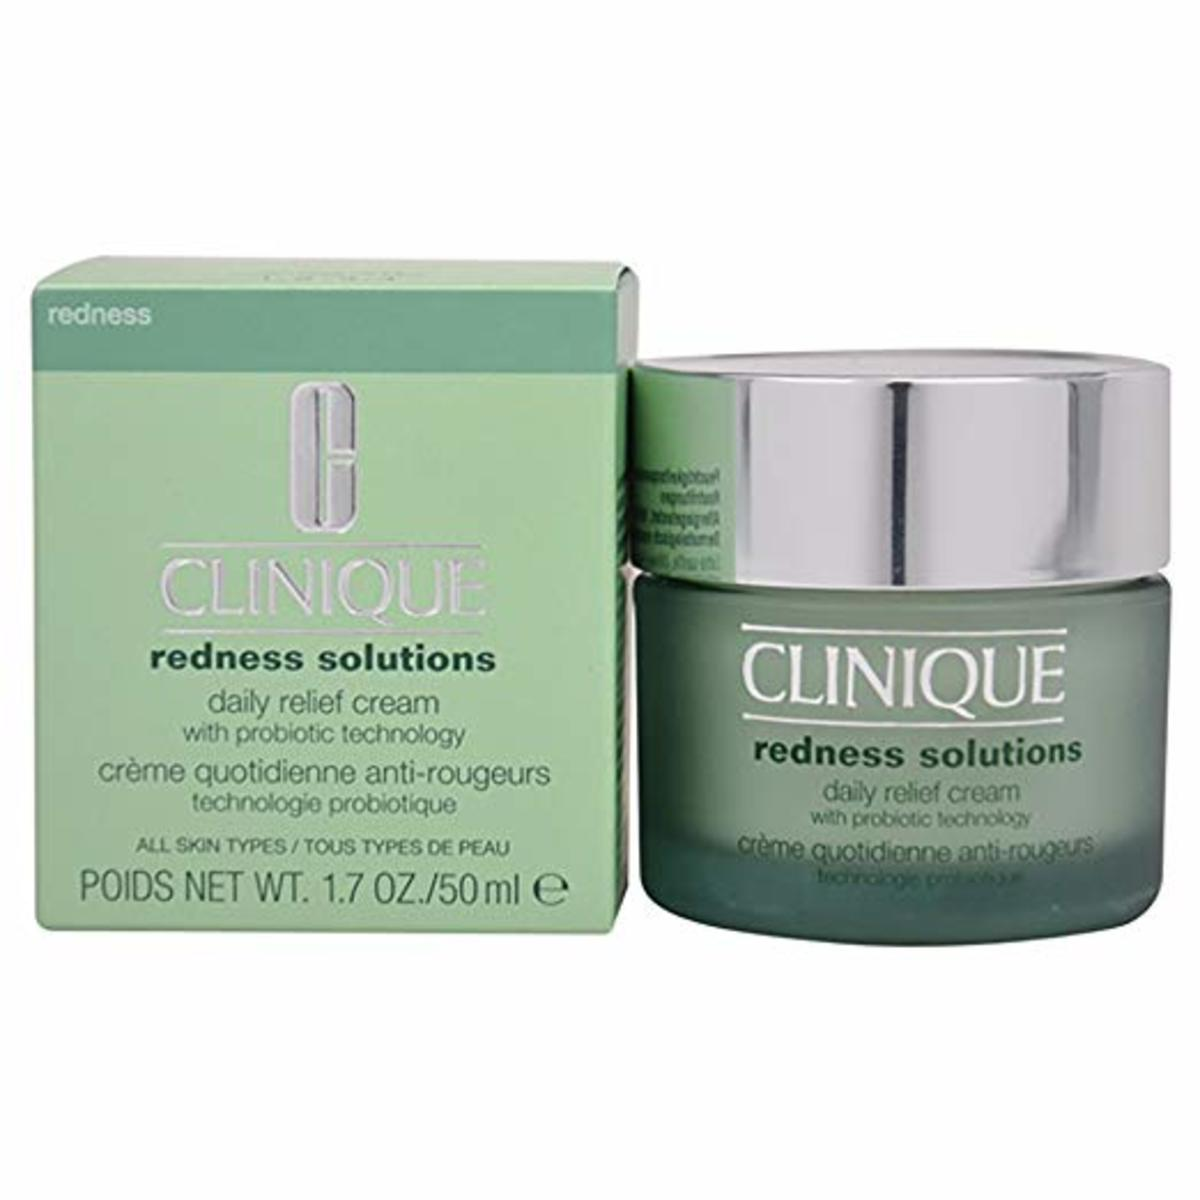 clinique-redness-solutions-daily-relief-cream-review